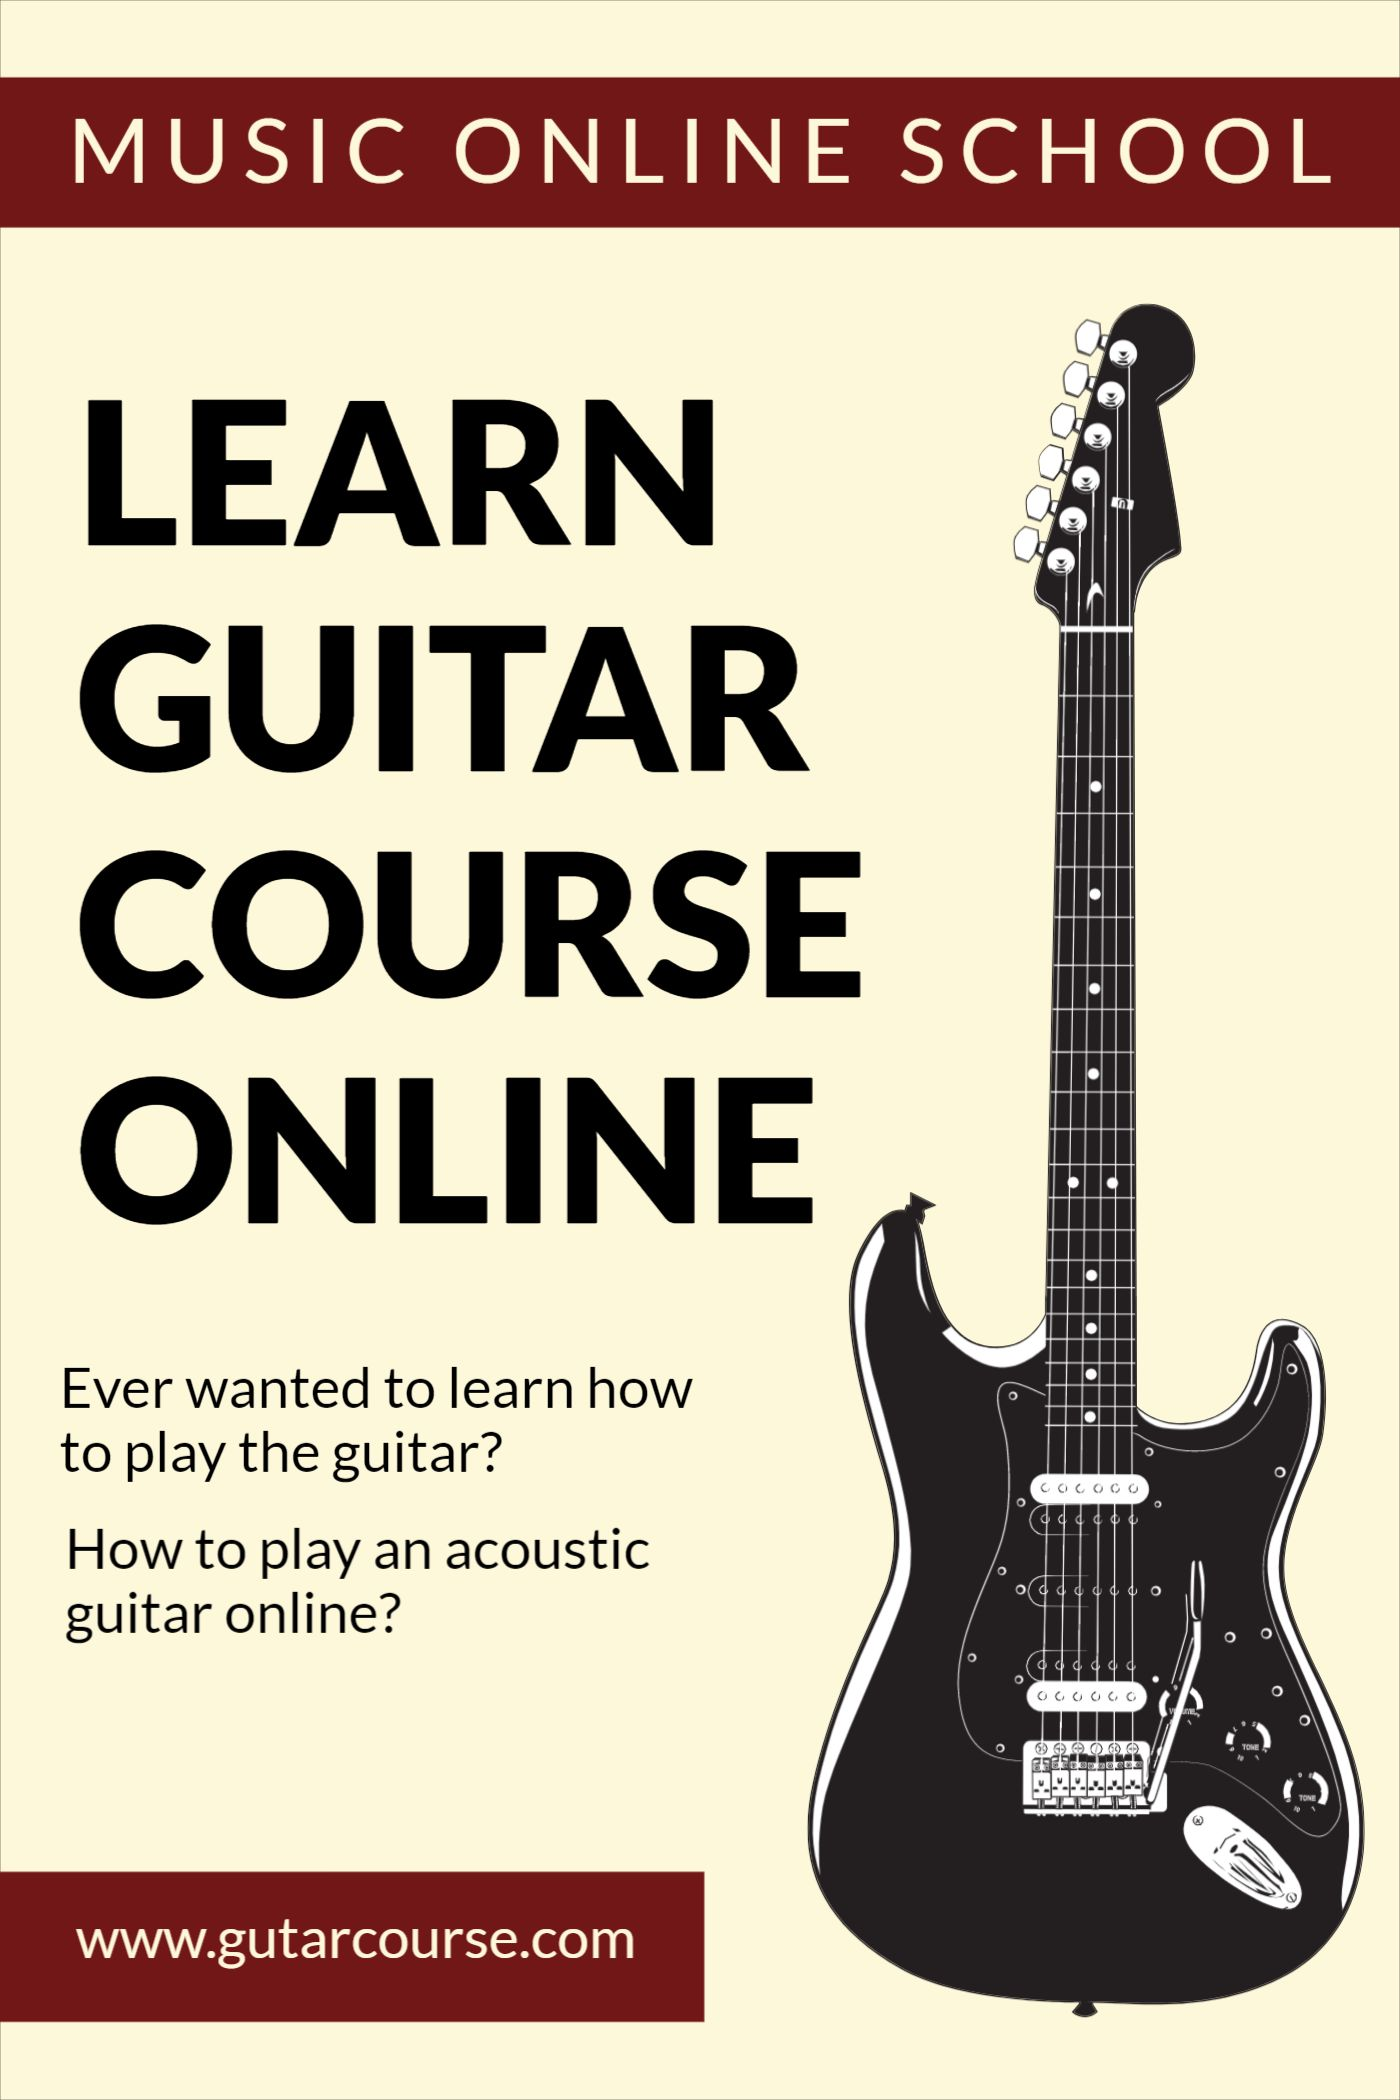 Guitar Course Online Cover Template